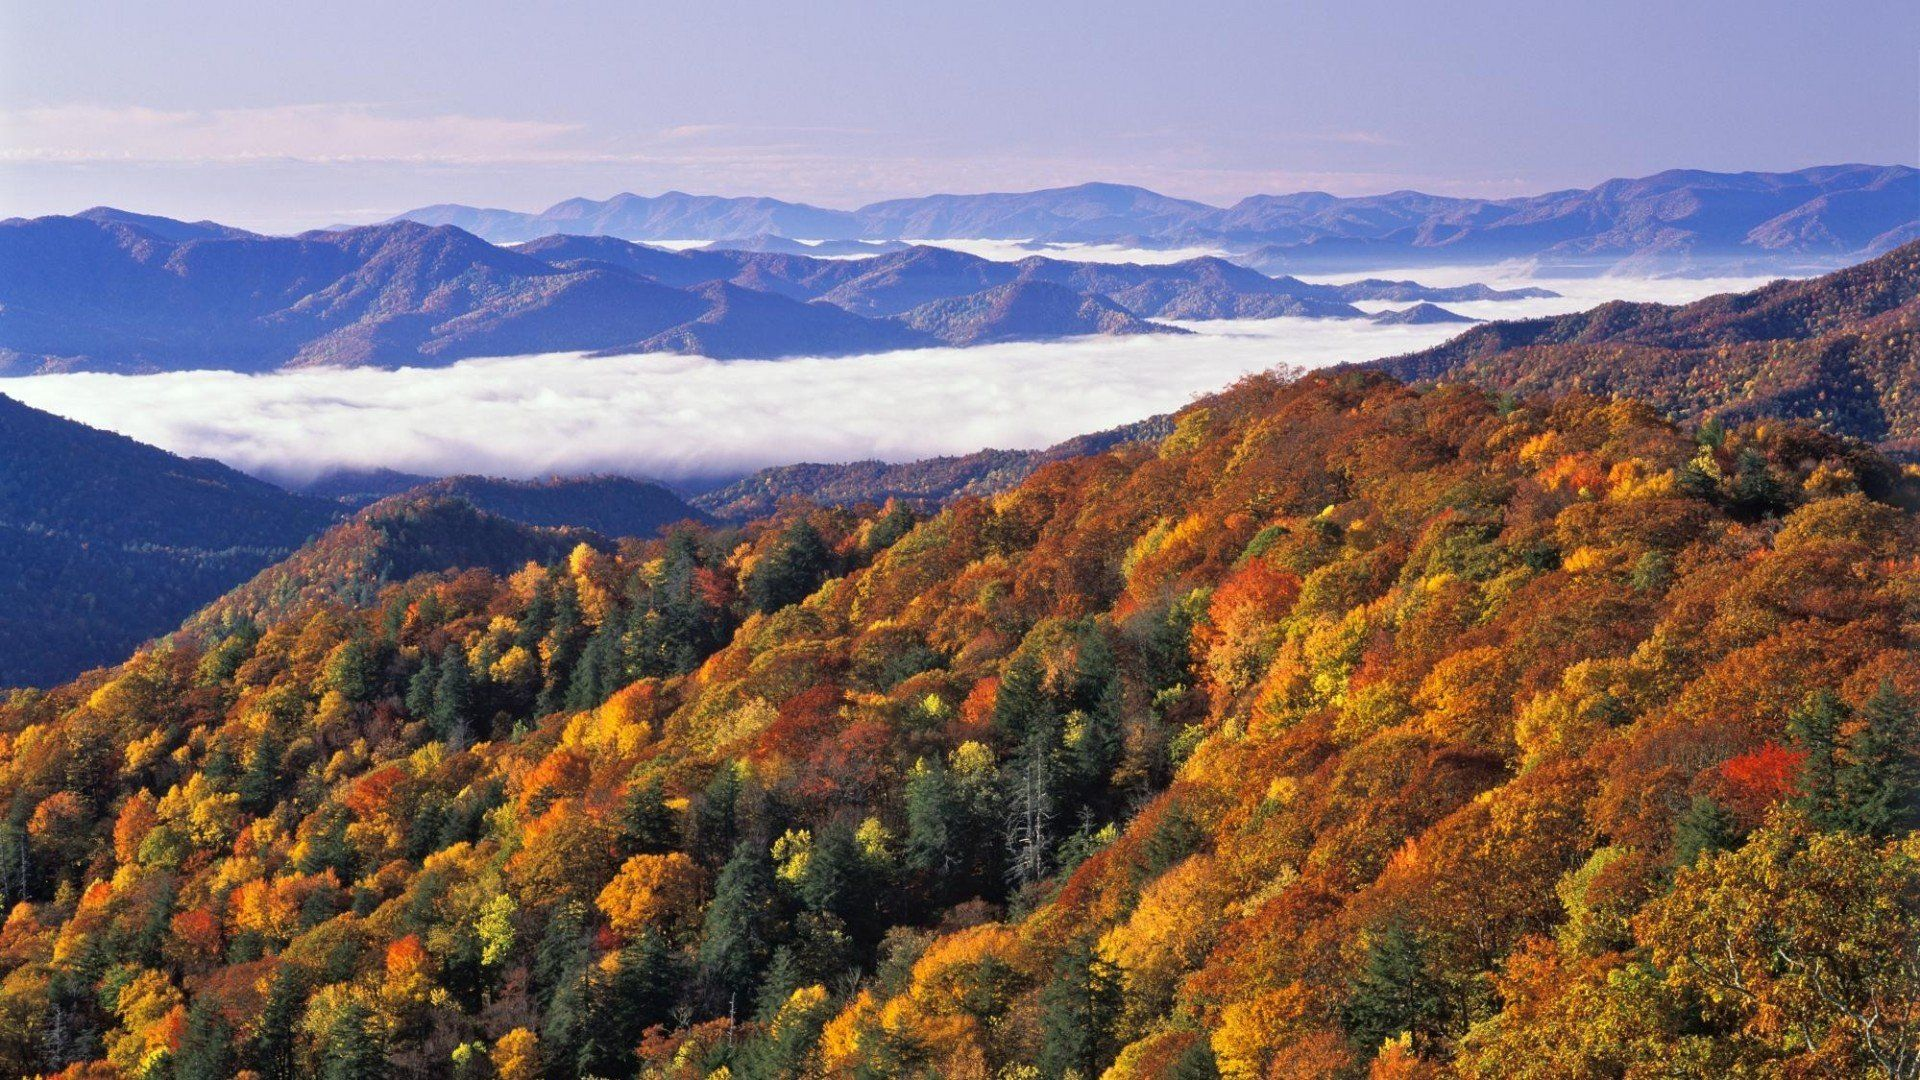 35 Great Smoky Mountains Fall Wallpapers   Download at WallpaperBro 1920x1080